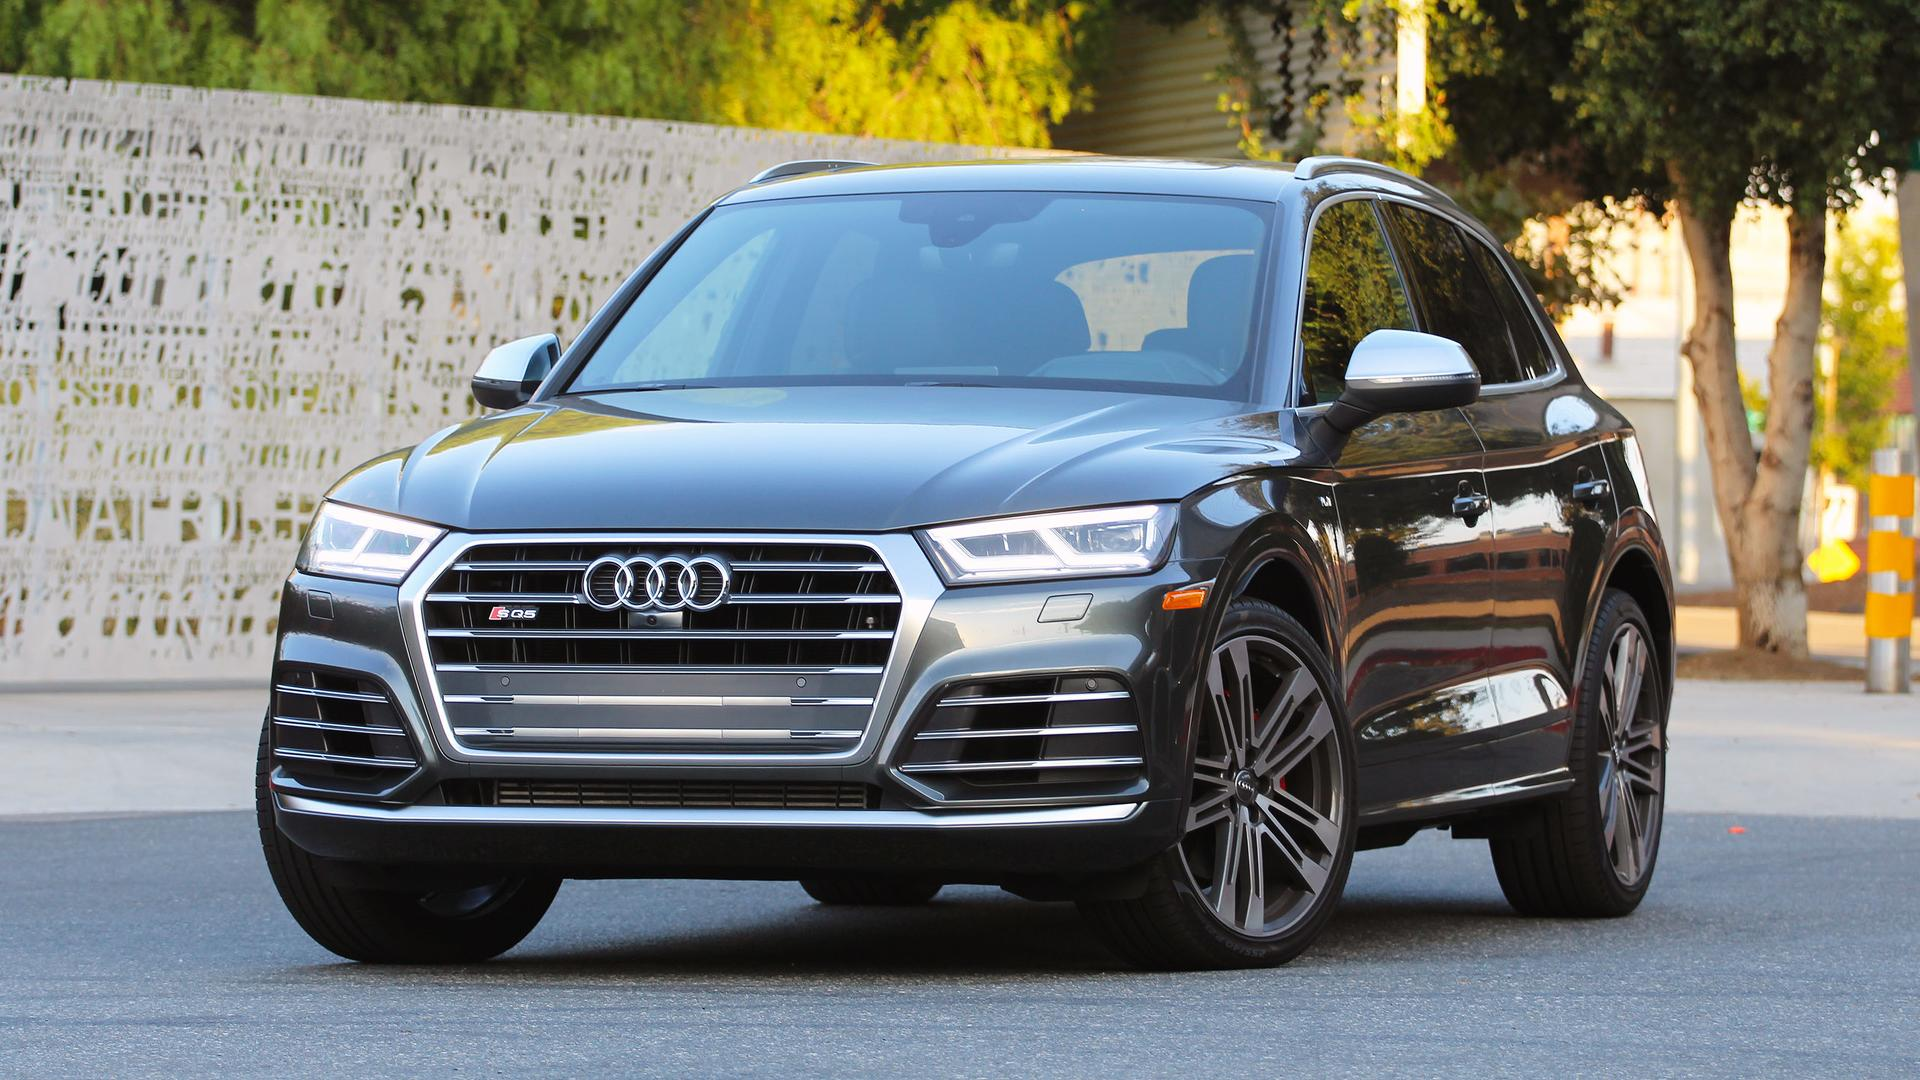 2018 Audi SQ5 Review: 'S' Is For...?